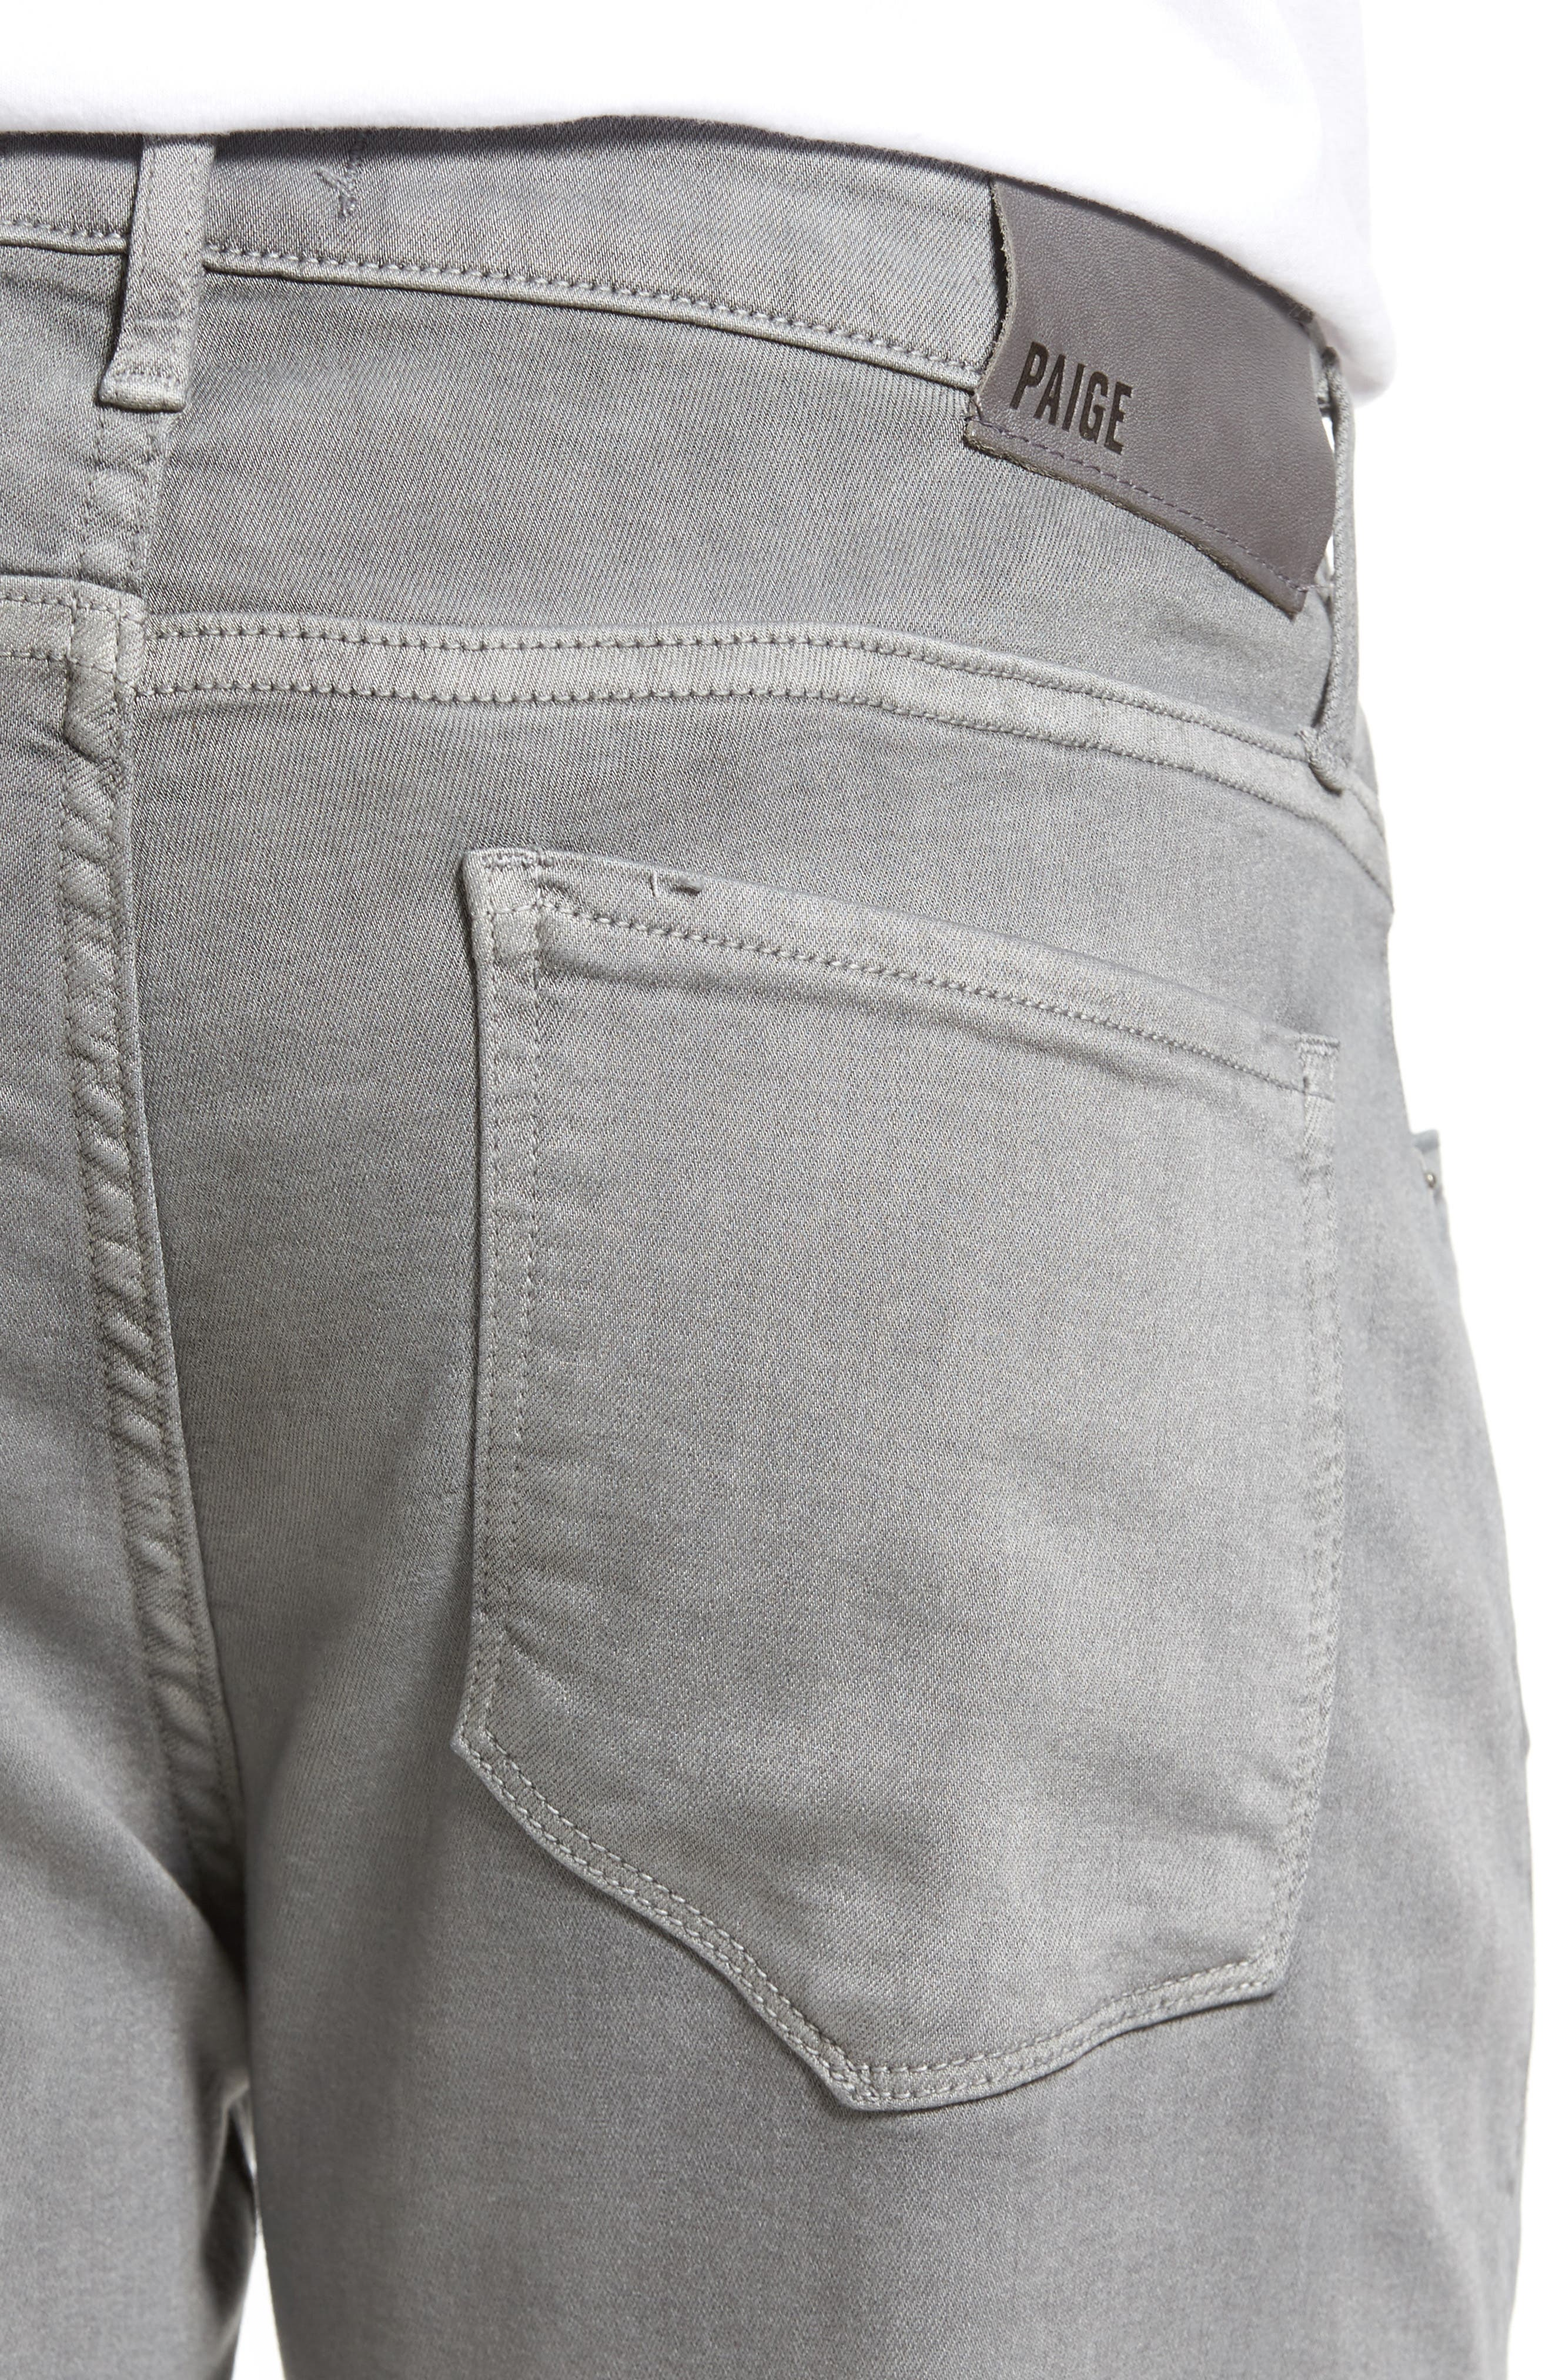 Transcend - Lennox Slim Fit Jeans,                             Alternate thumbnail 4, color,                             020